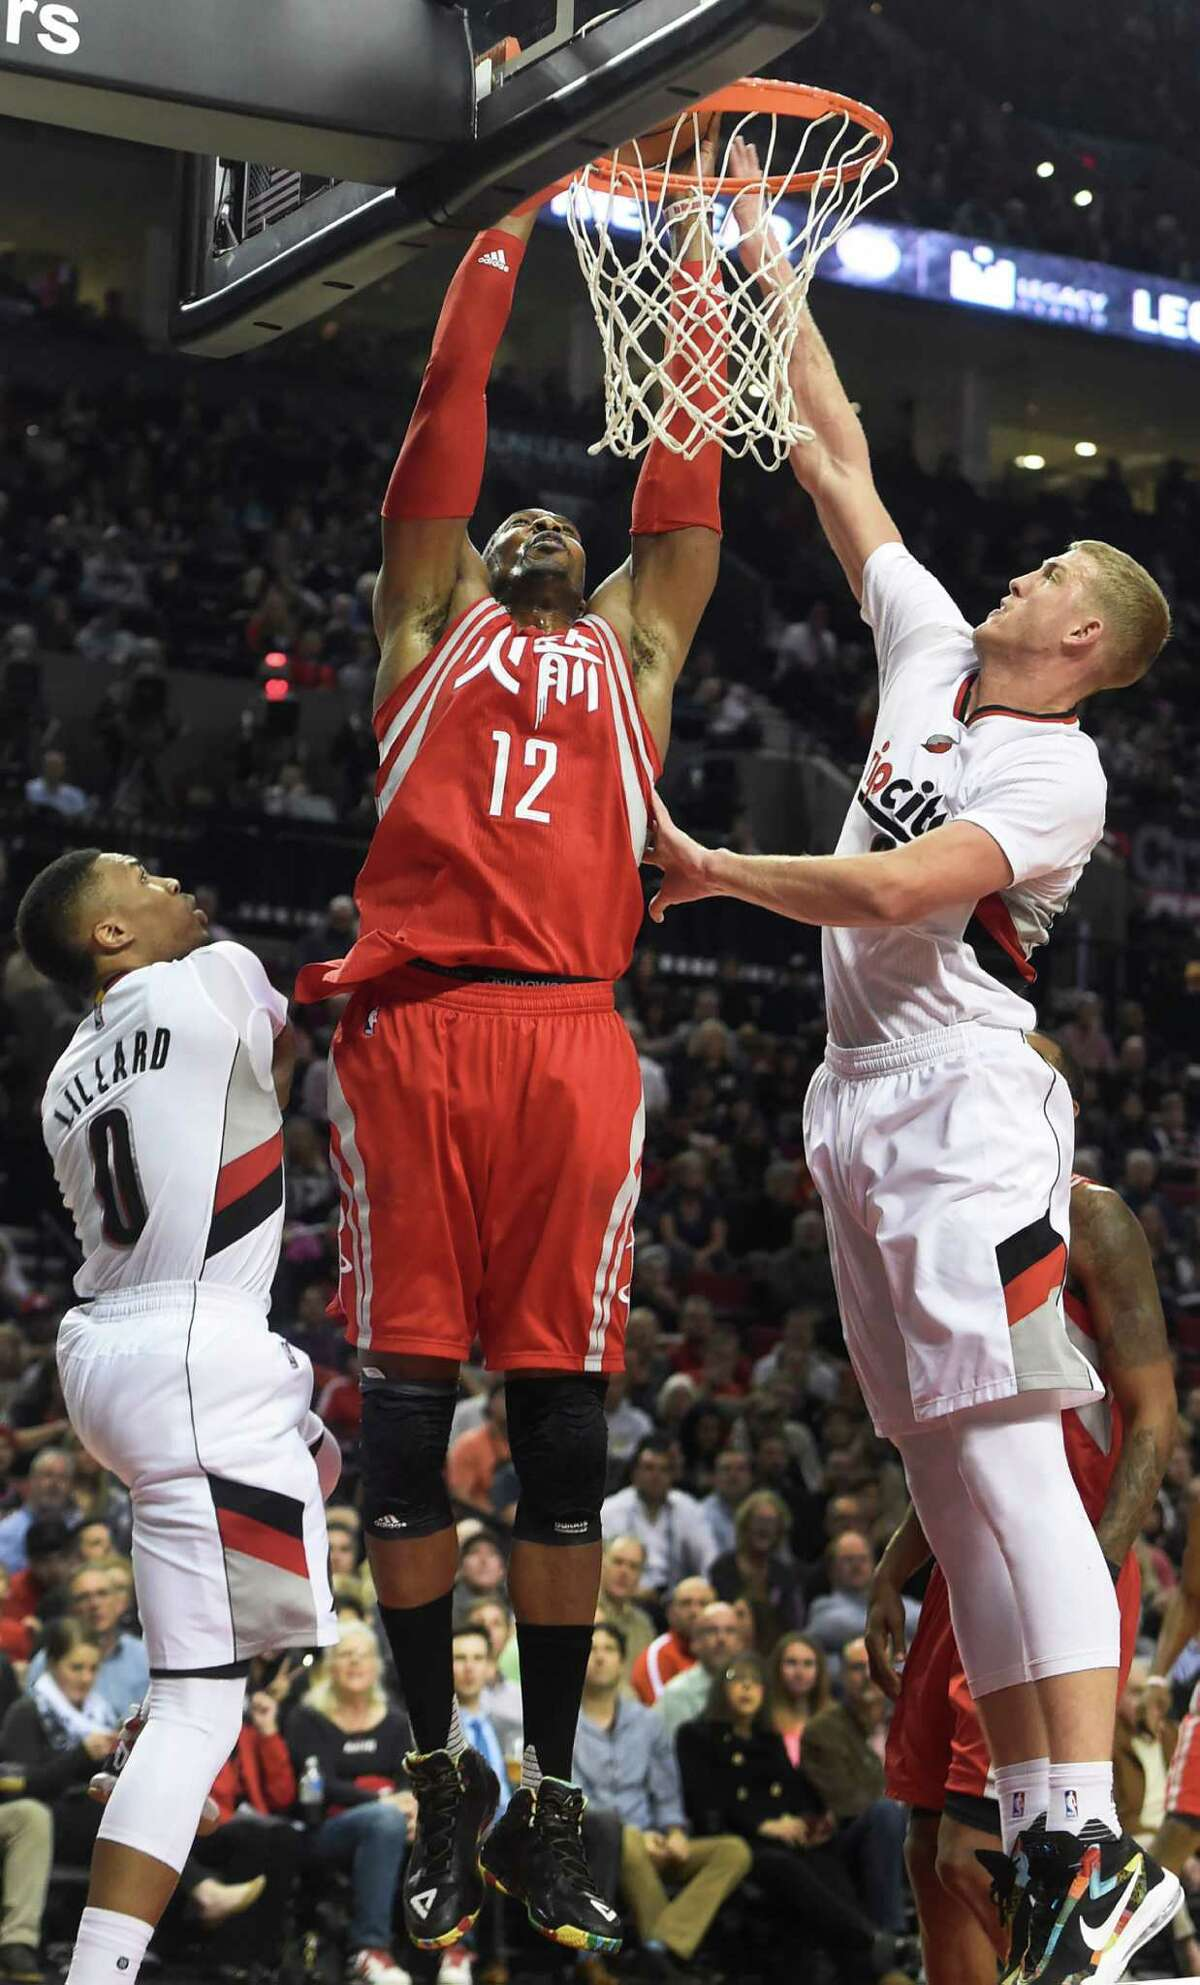 Houston Rockets center Dwight Howard (12) goes up for a shot on Portland Trail Blazers guard Damian Lillard (0) and center Mason Plumlee (24) during the first half of an NBA basketball game in Portland, Ore., Wednesday, Feb. 10, 2016. (AP Photo/Steve Dykes)